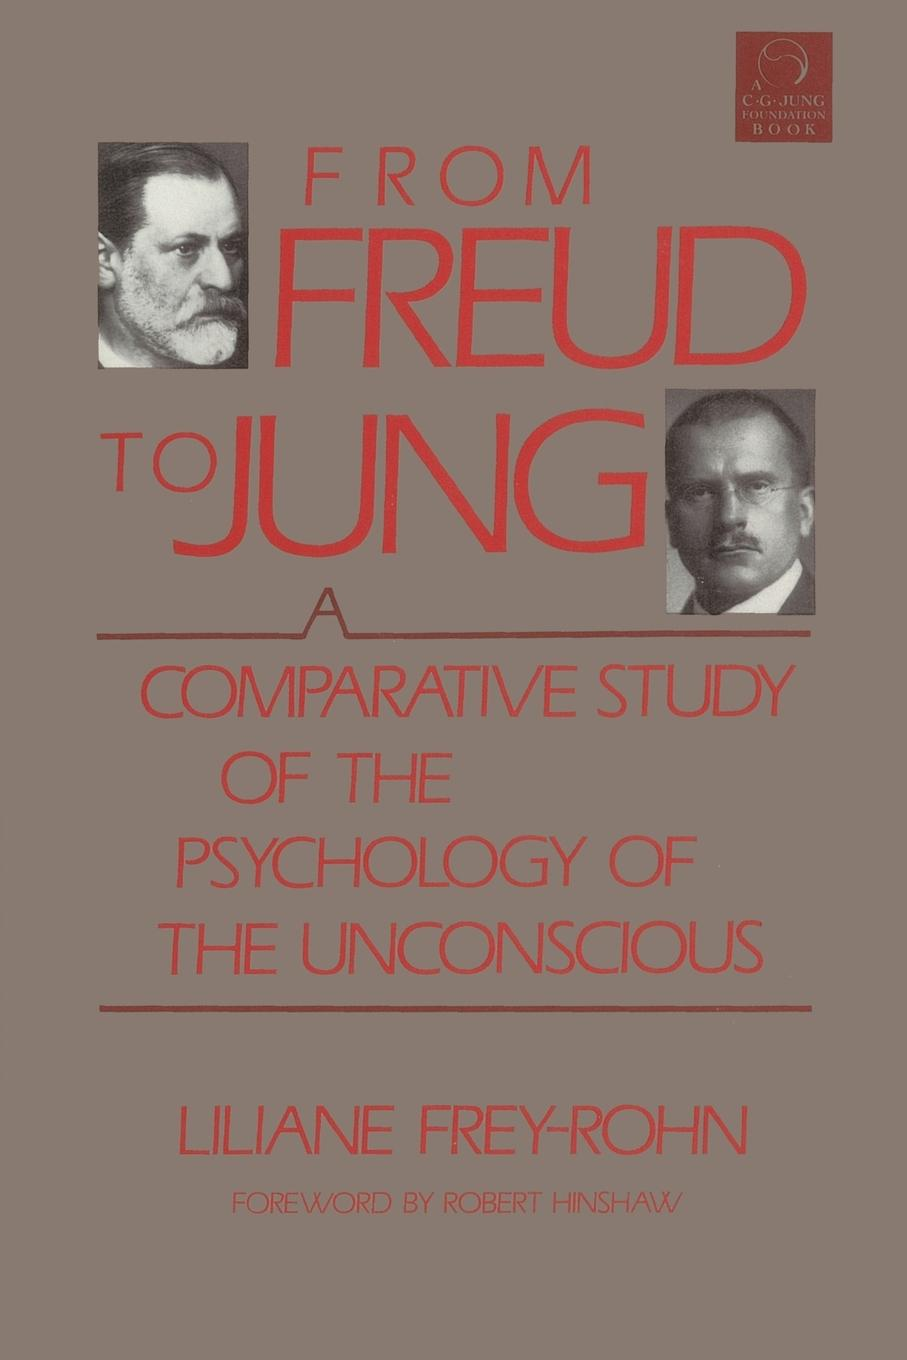 Liliane Frey-Rohn, Evelyn K. Engreen, Fred E. Engreen From Freud to Jung. A Comparative Study of the Psychology of the Unconscious